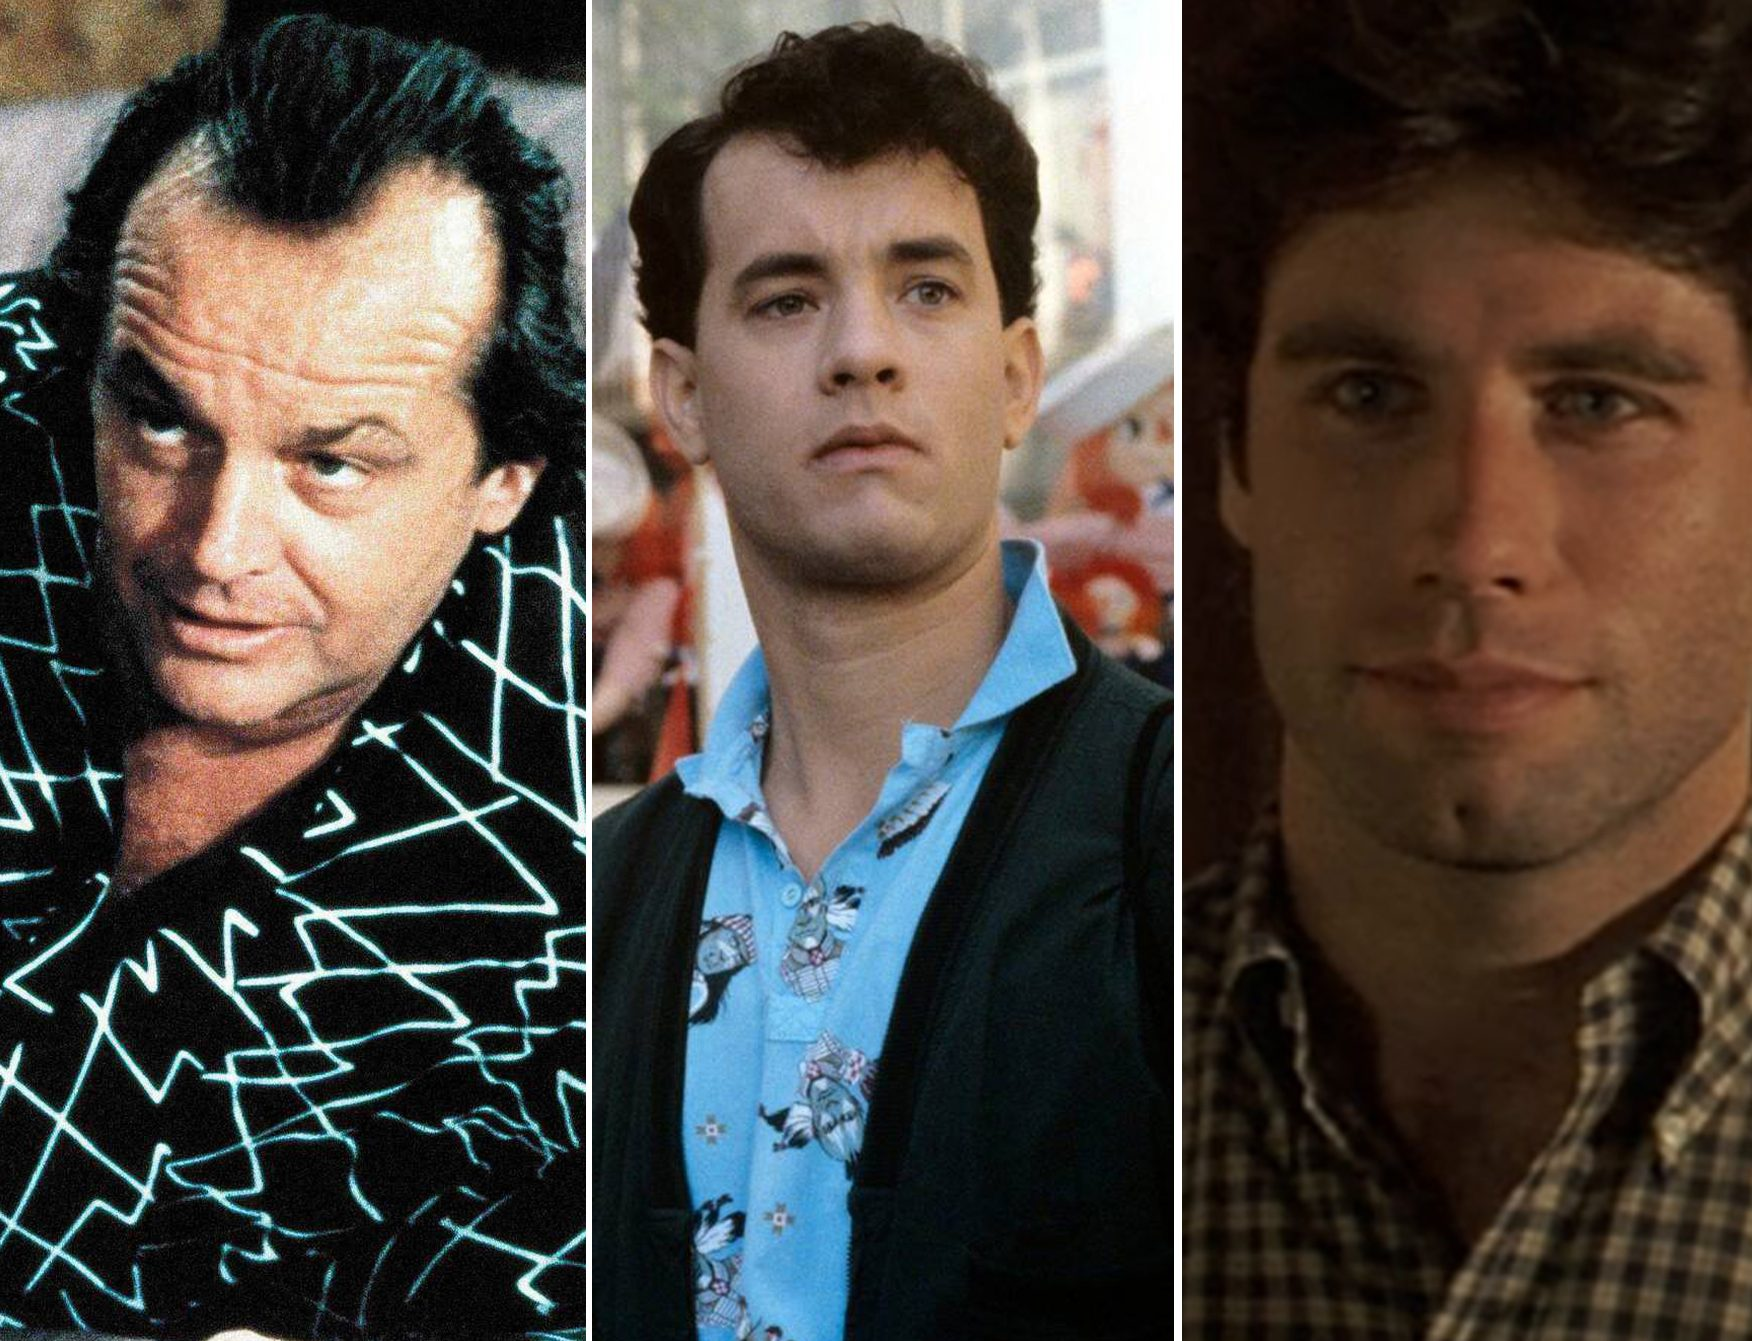 Nicholson Hanks Travolta e1629719641320 20 Things You Probably Didn't Know About Three Men And A Baby